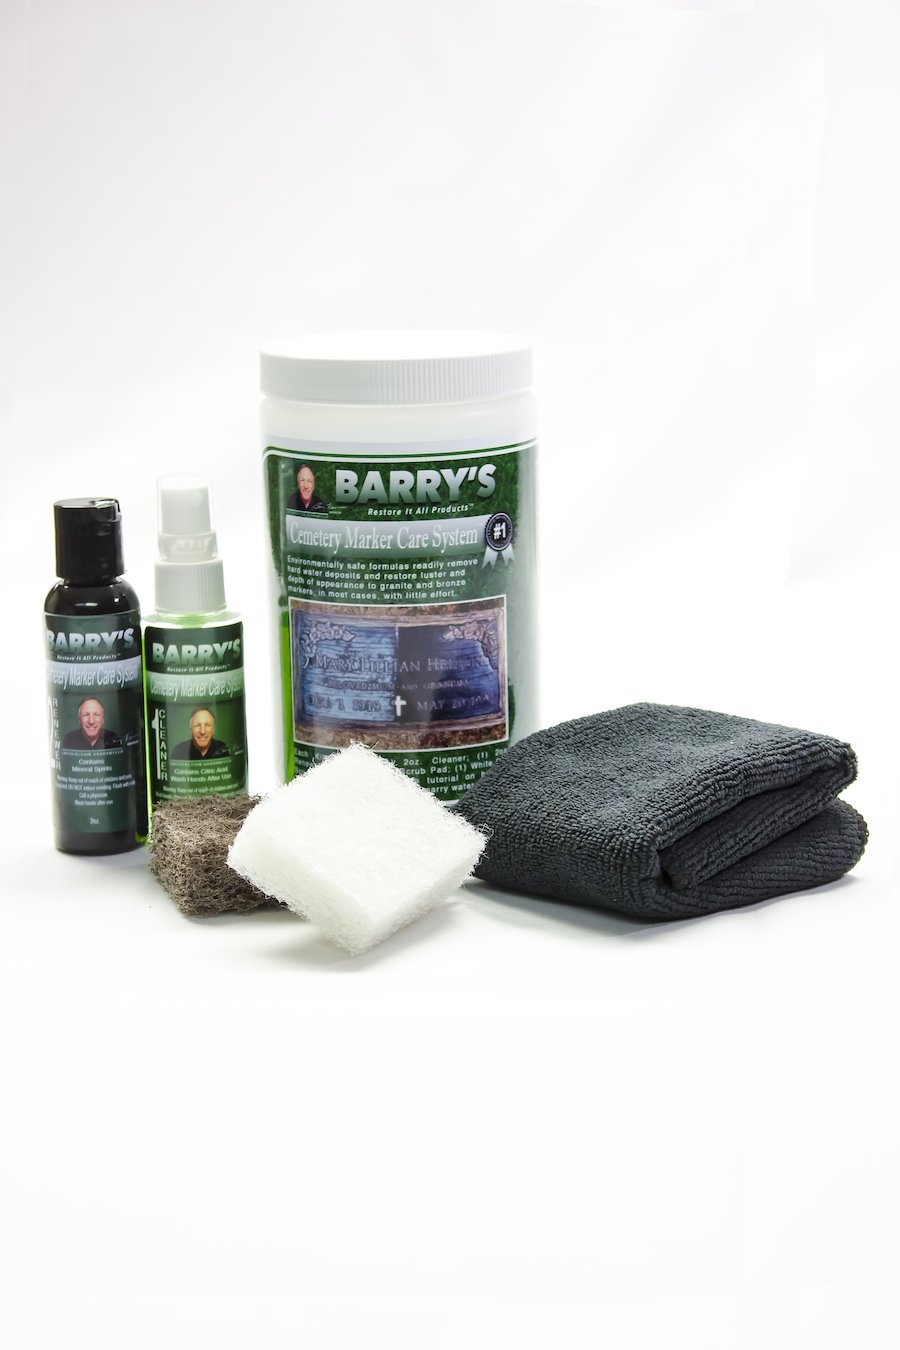 Barry's Restore It All Products - Cemetery Marker Care System